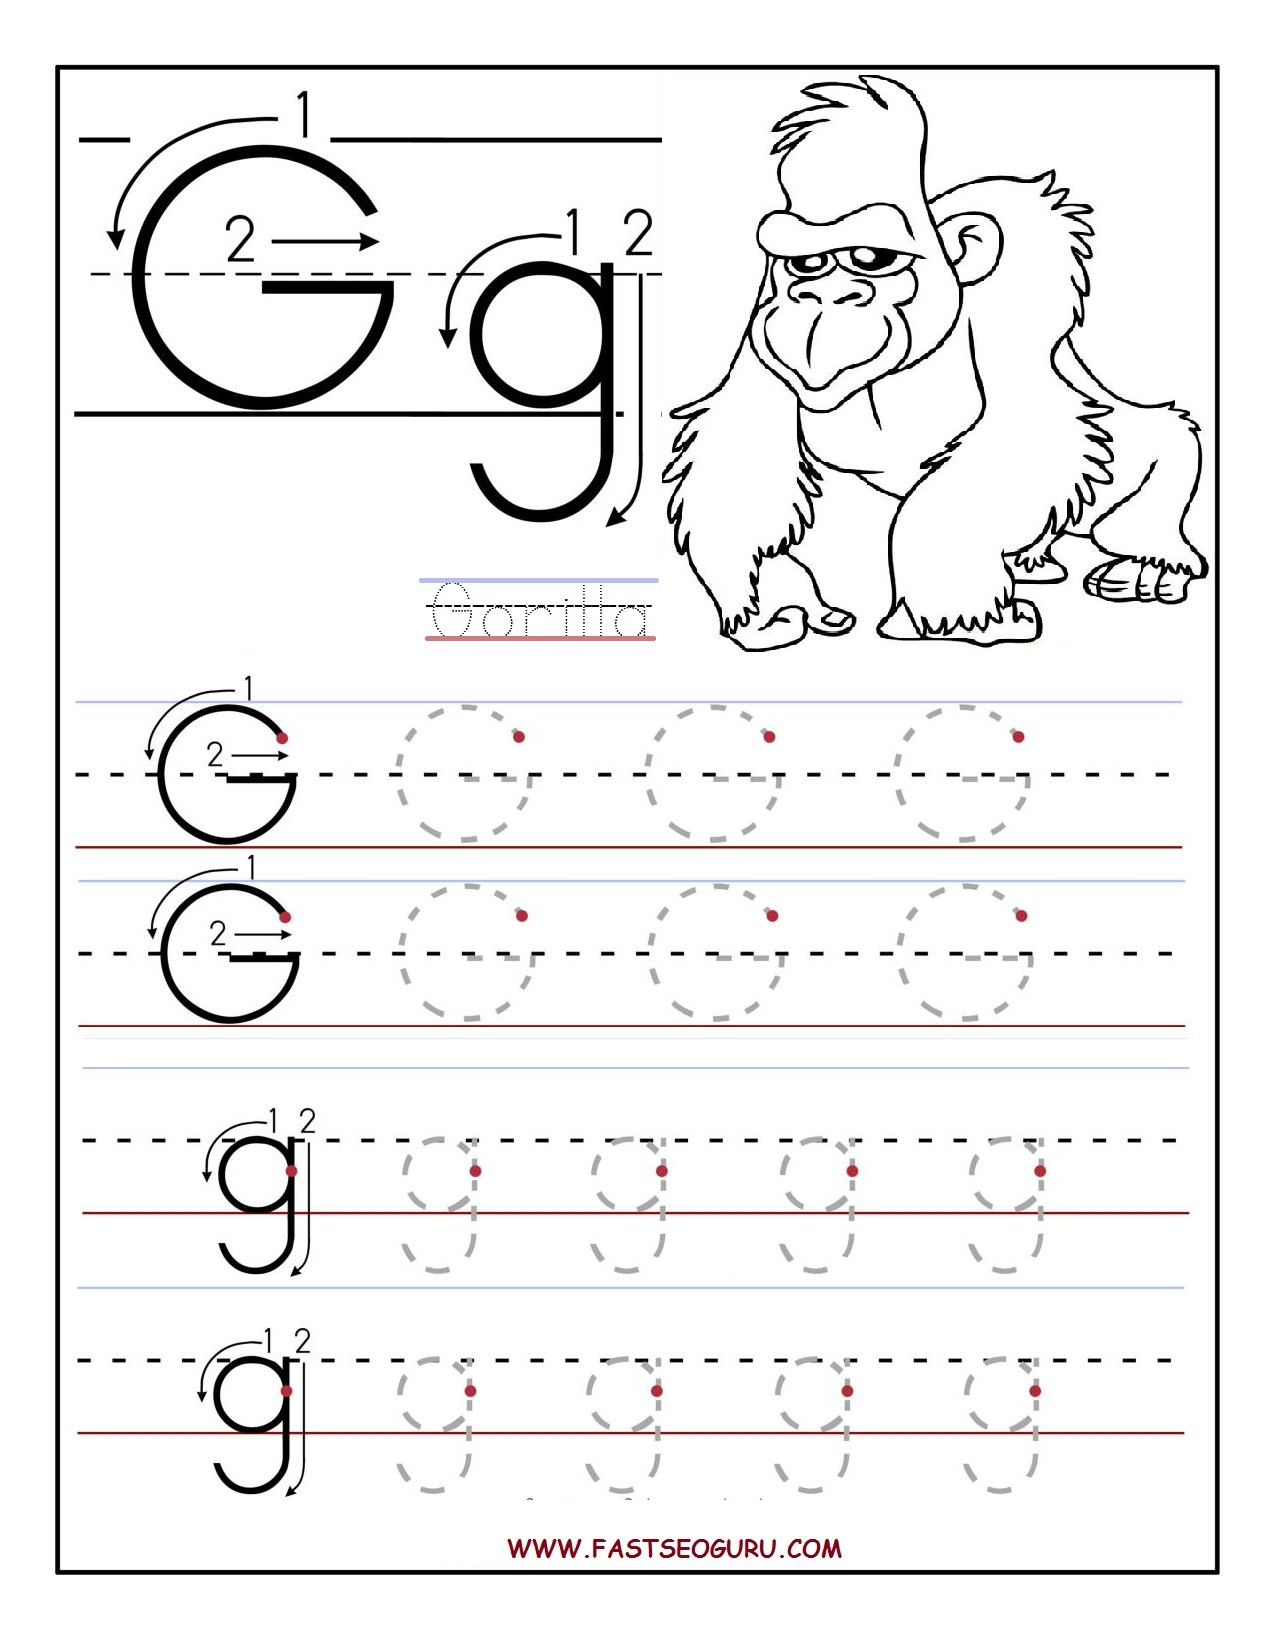 Printable Letter G Tracing Worksheets For Preschool, Preschool